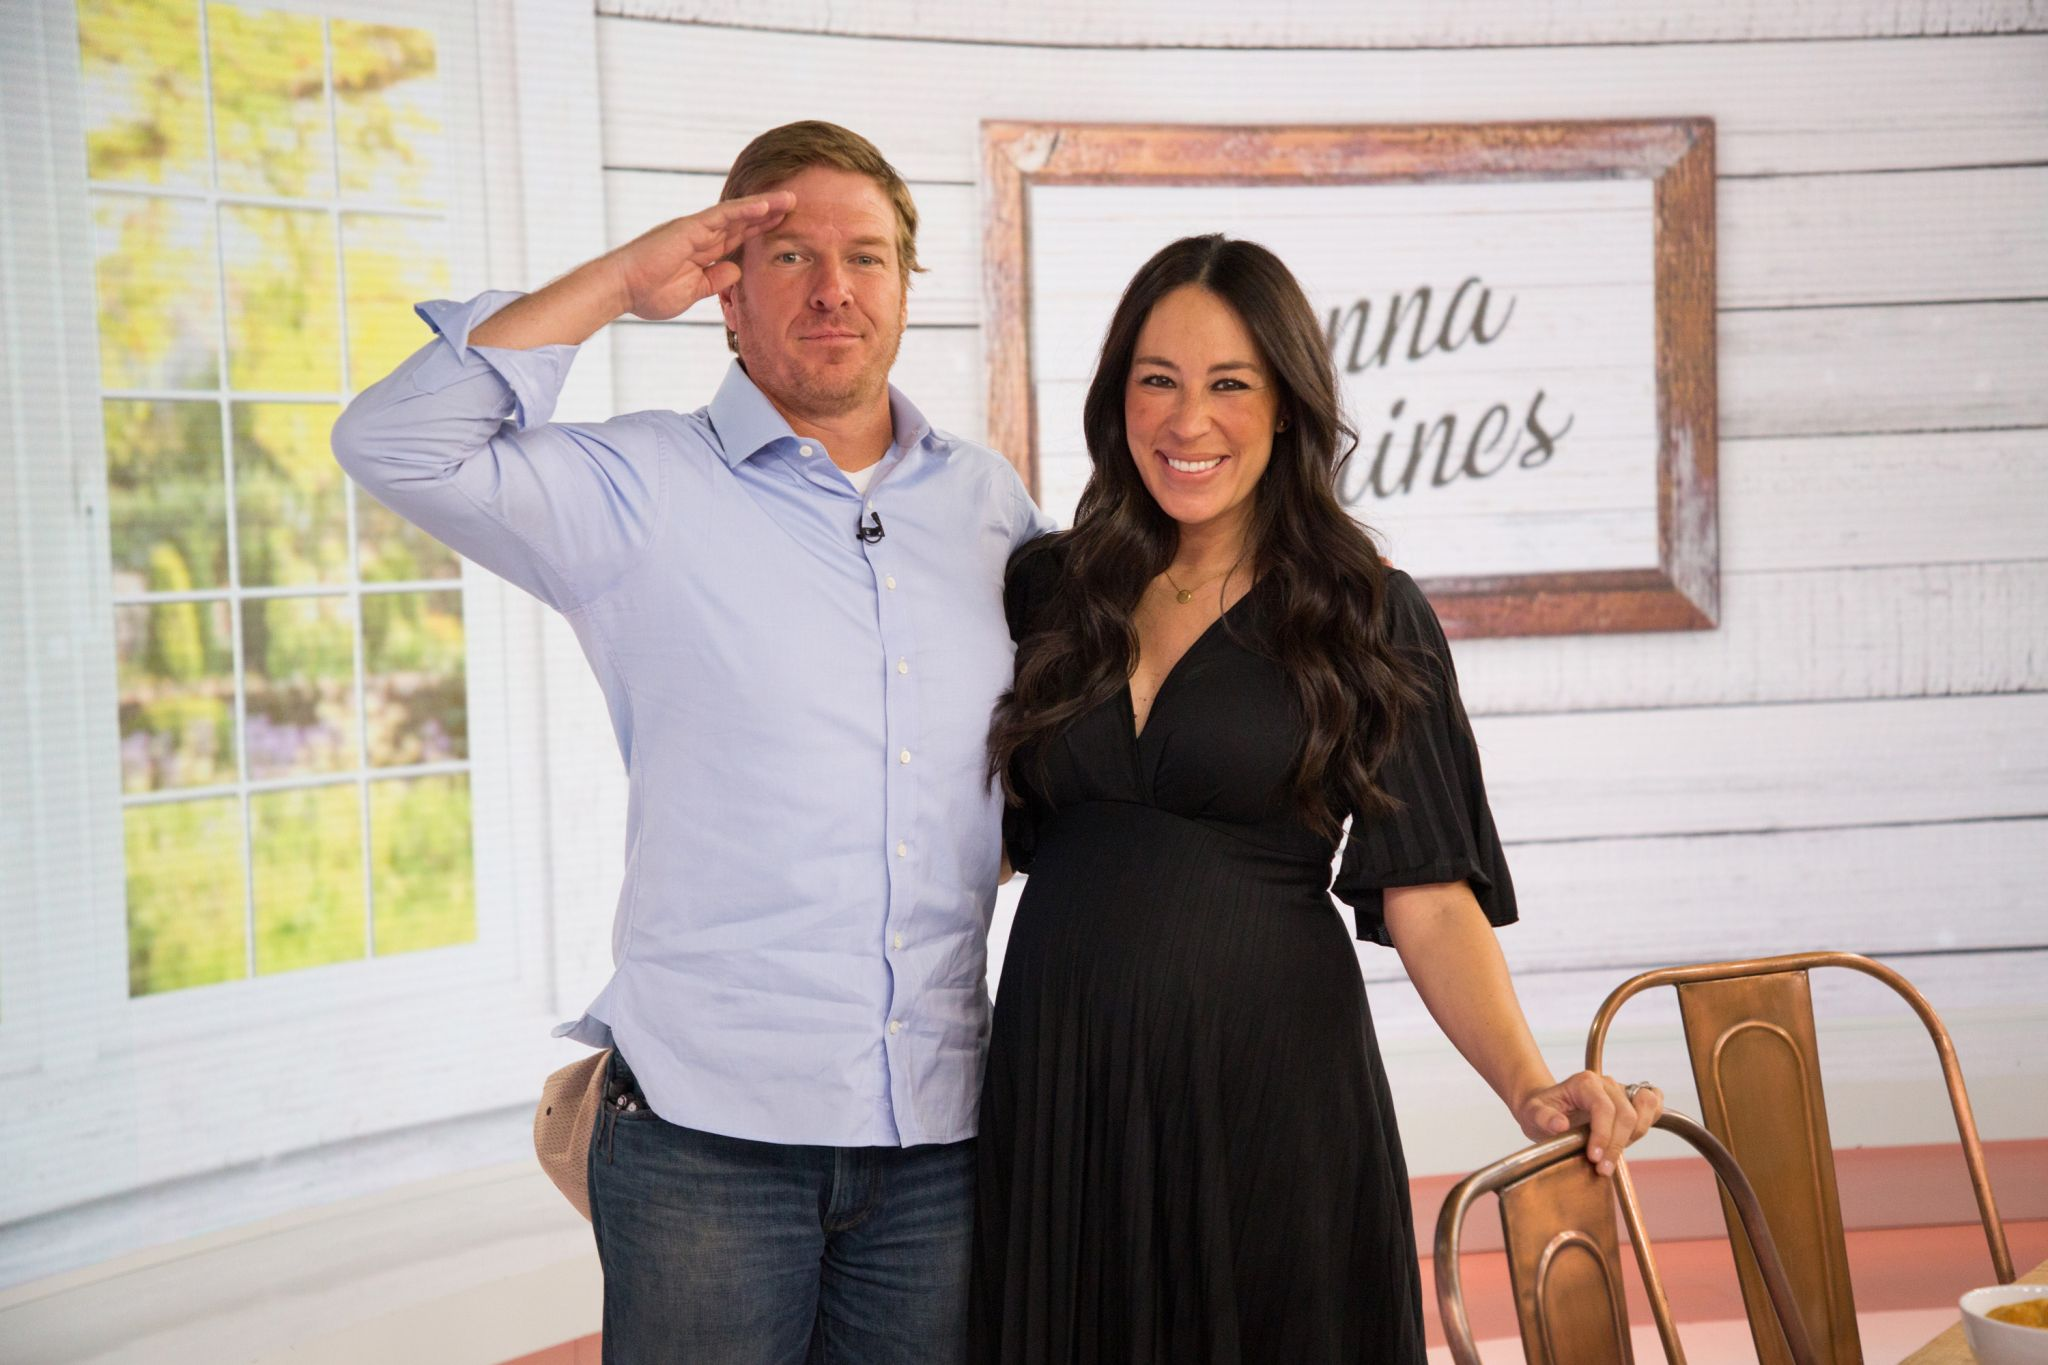 Chip And Joanna Gaines' Magnolia Homes Settles With EPA